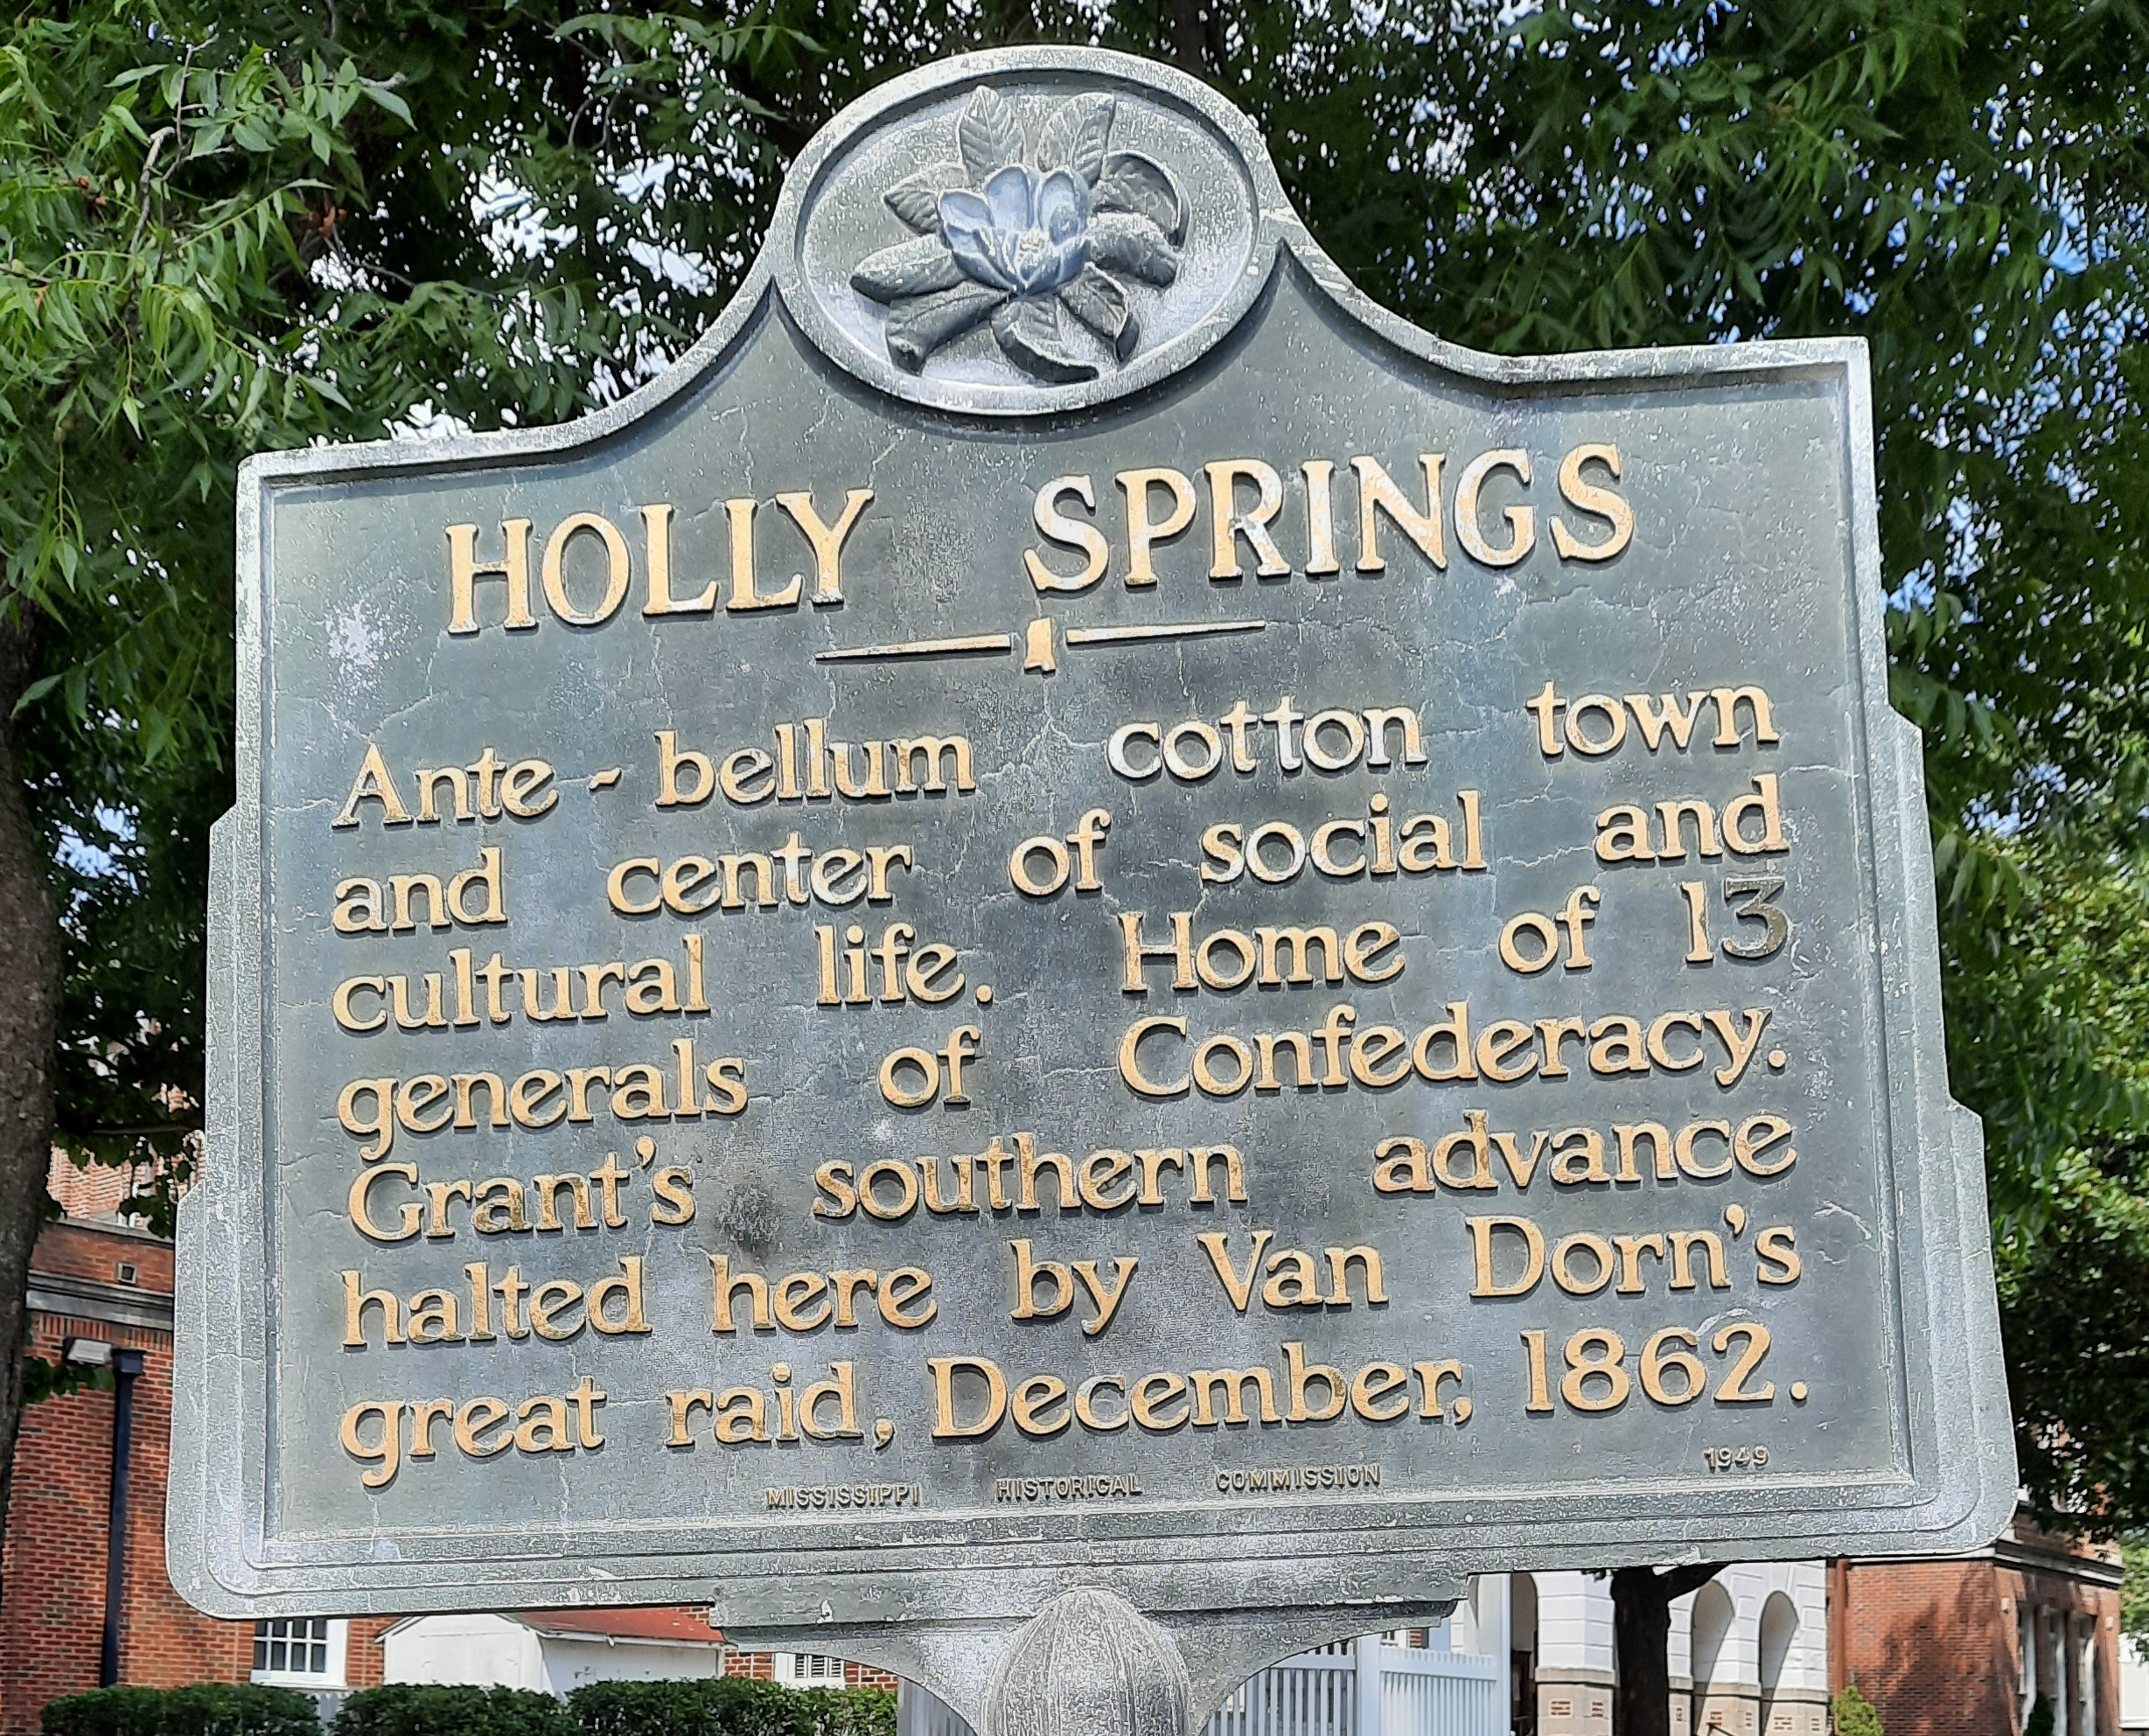 DNA Across the USA: Holly Springs, MS!